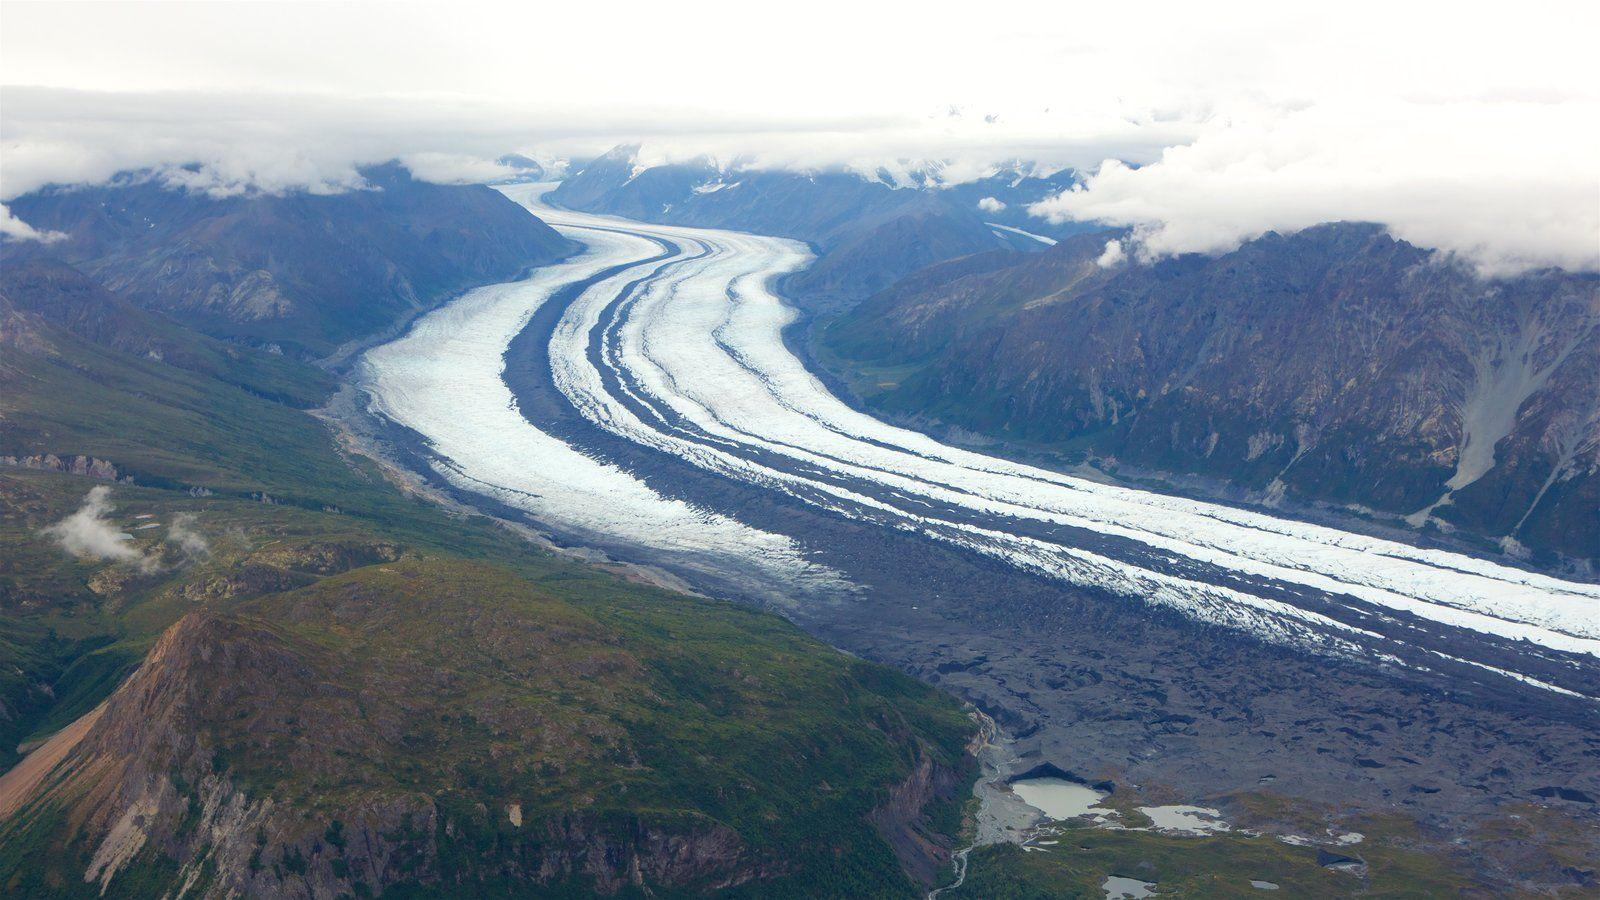 Landscape Pictures: View Images of Wrangell-St. Elias National ...